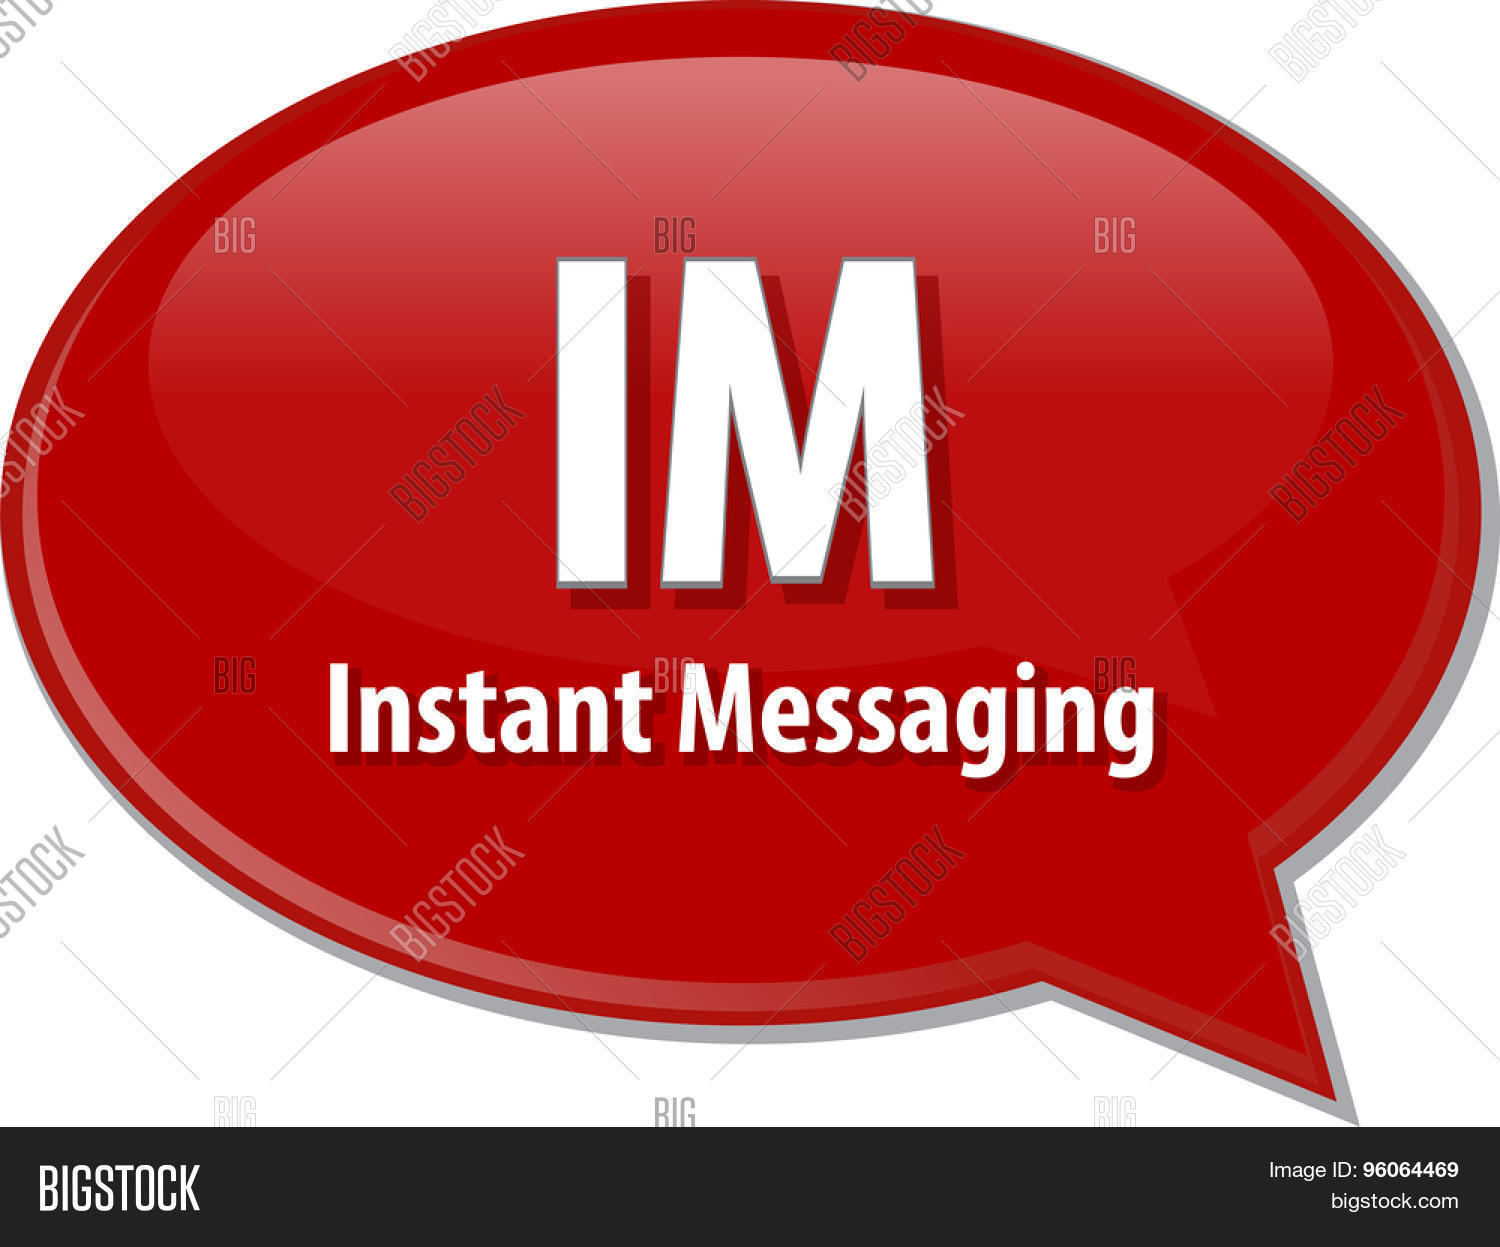 What Is The Meaning Of Instant Messaging